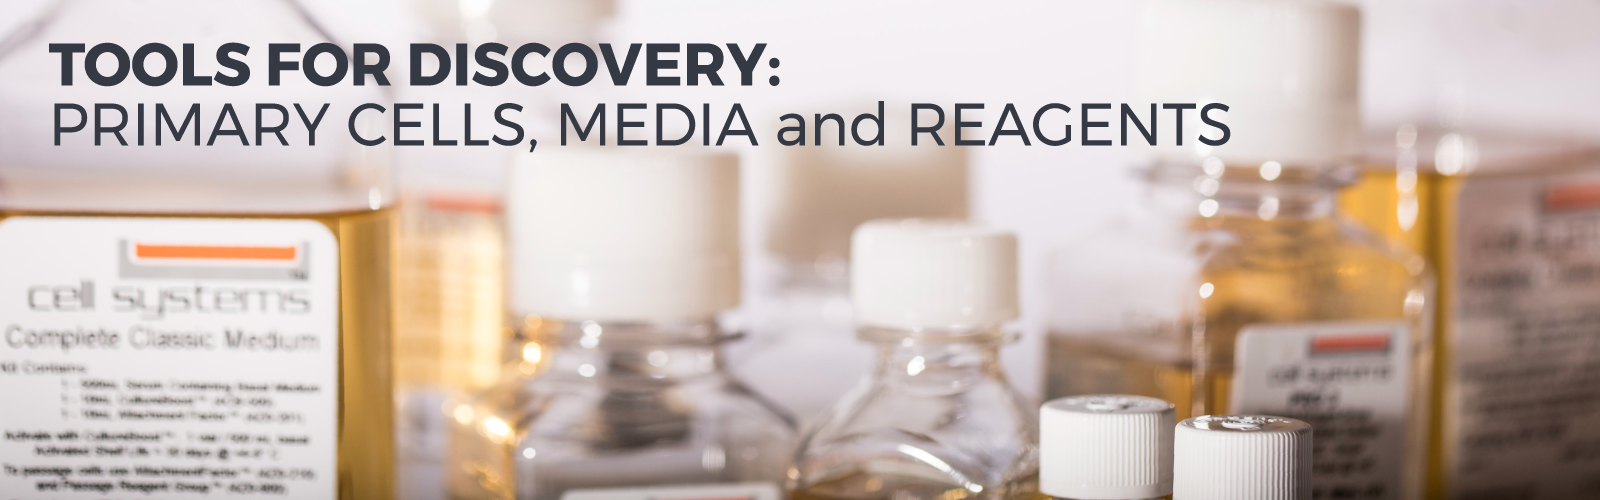 Tools for Discovery: Primary Cells, Media and Reagents